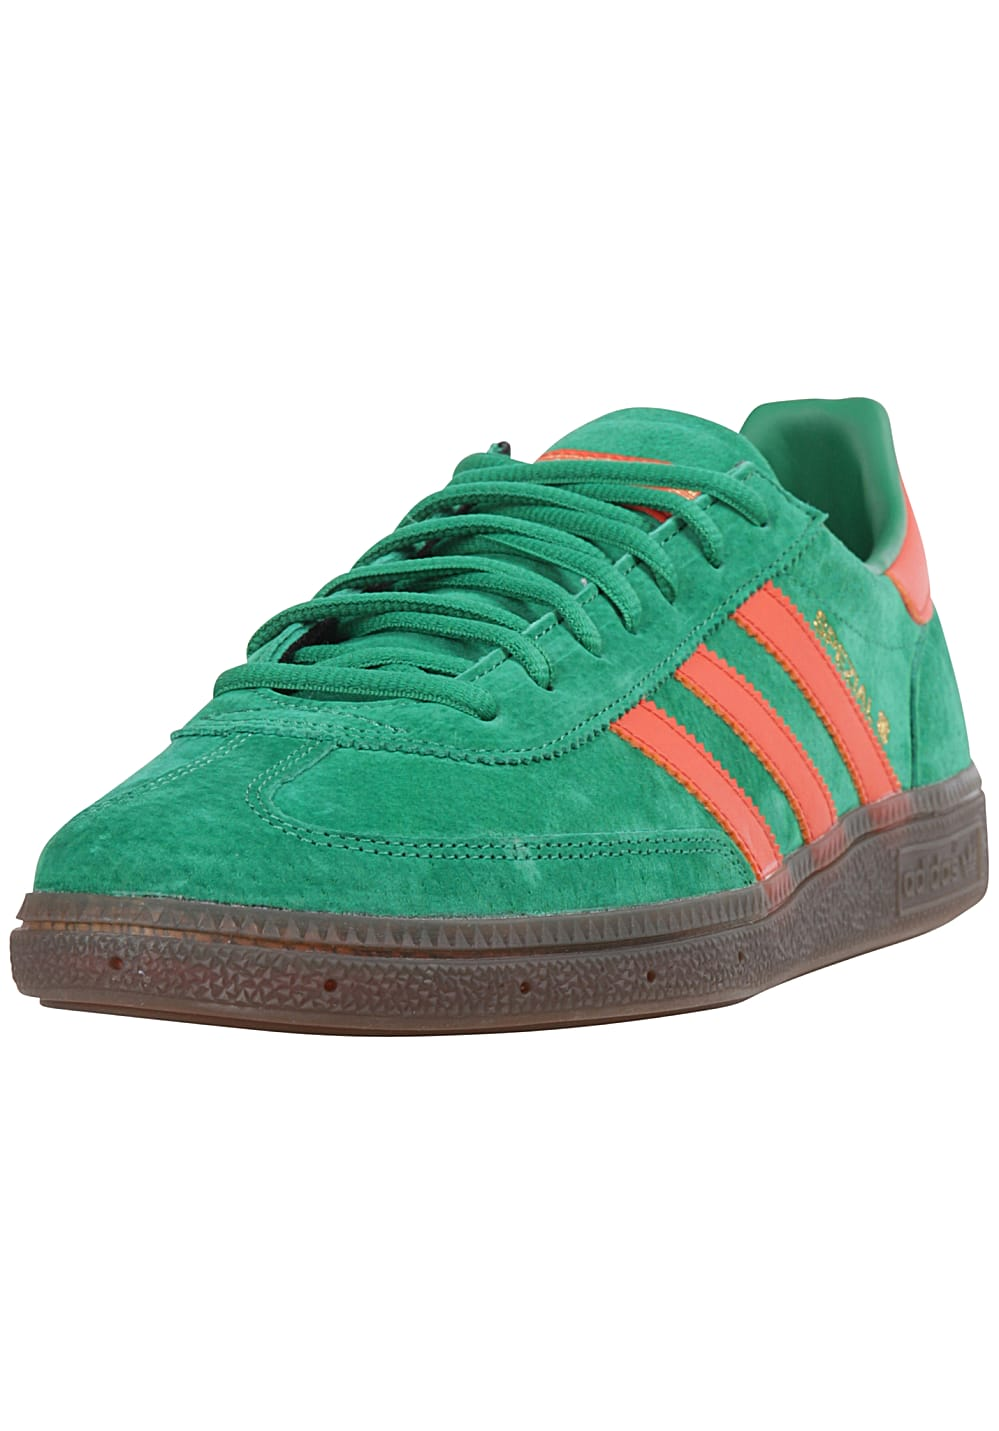 ADIDAS ORIGINALS Handball Spezial Sneakers voor Heren Groen